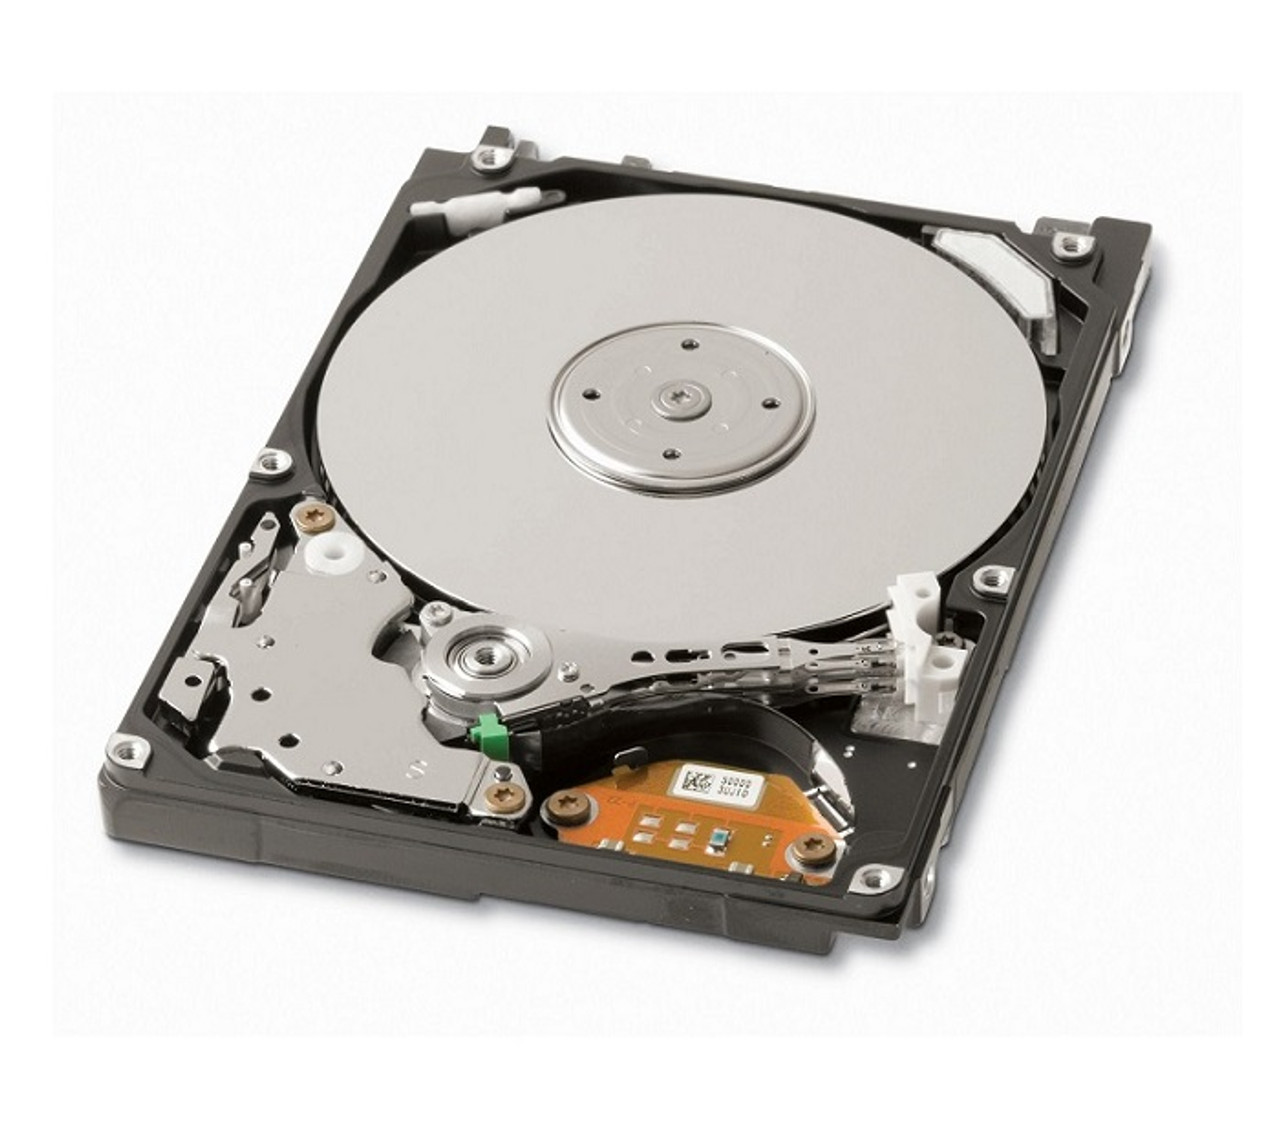 0A73293 - Hitachi Travelstar 7K500 320GB 7200RPM SATA 3GB/s 16MB Cache 2.5-inch Hard Disk Drive